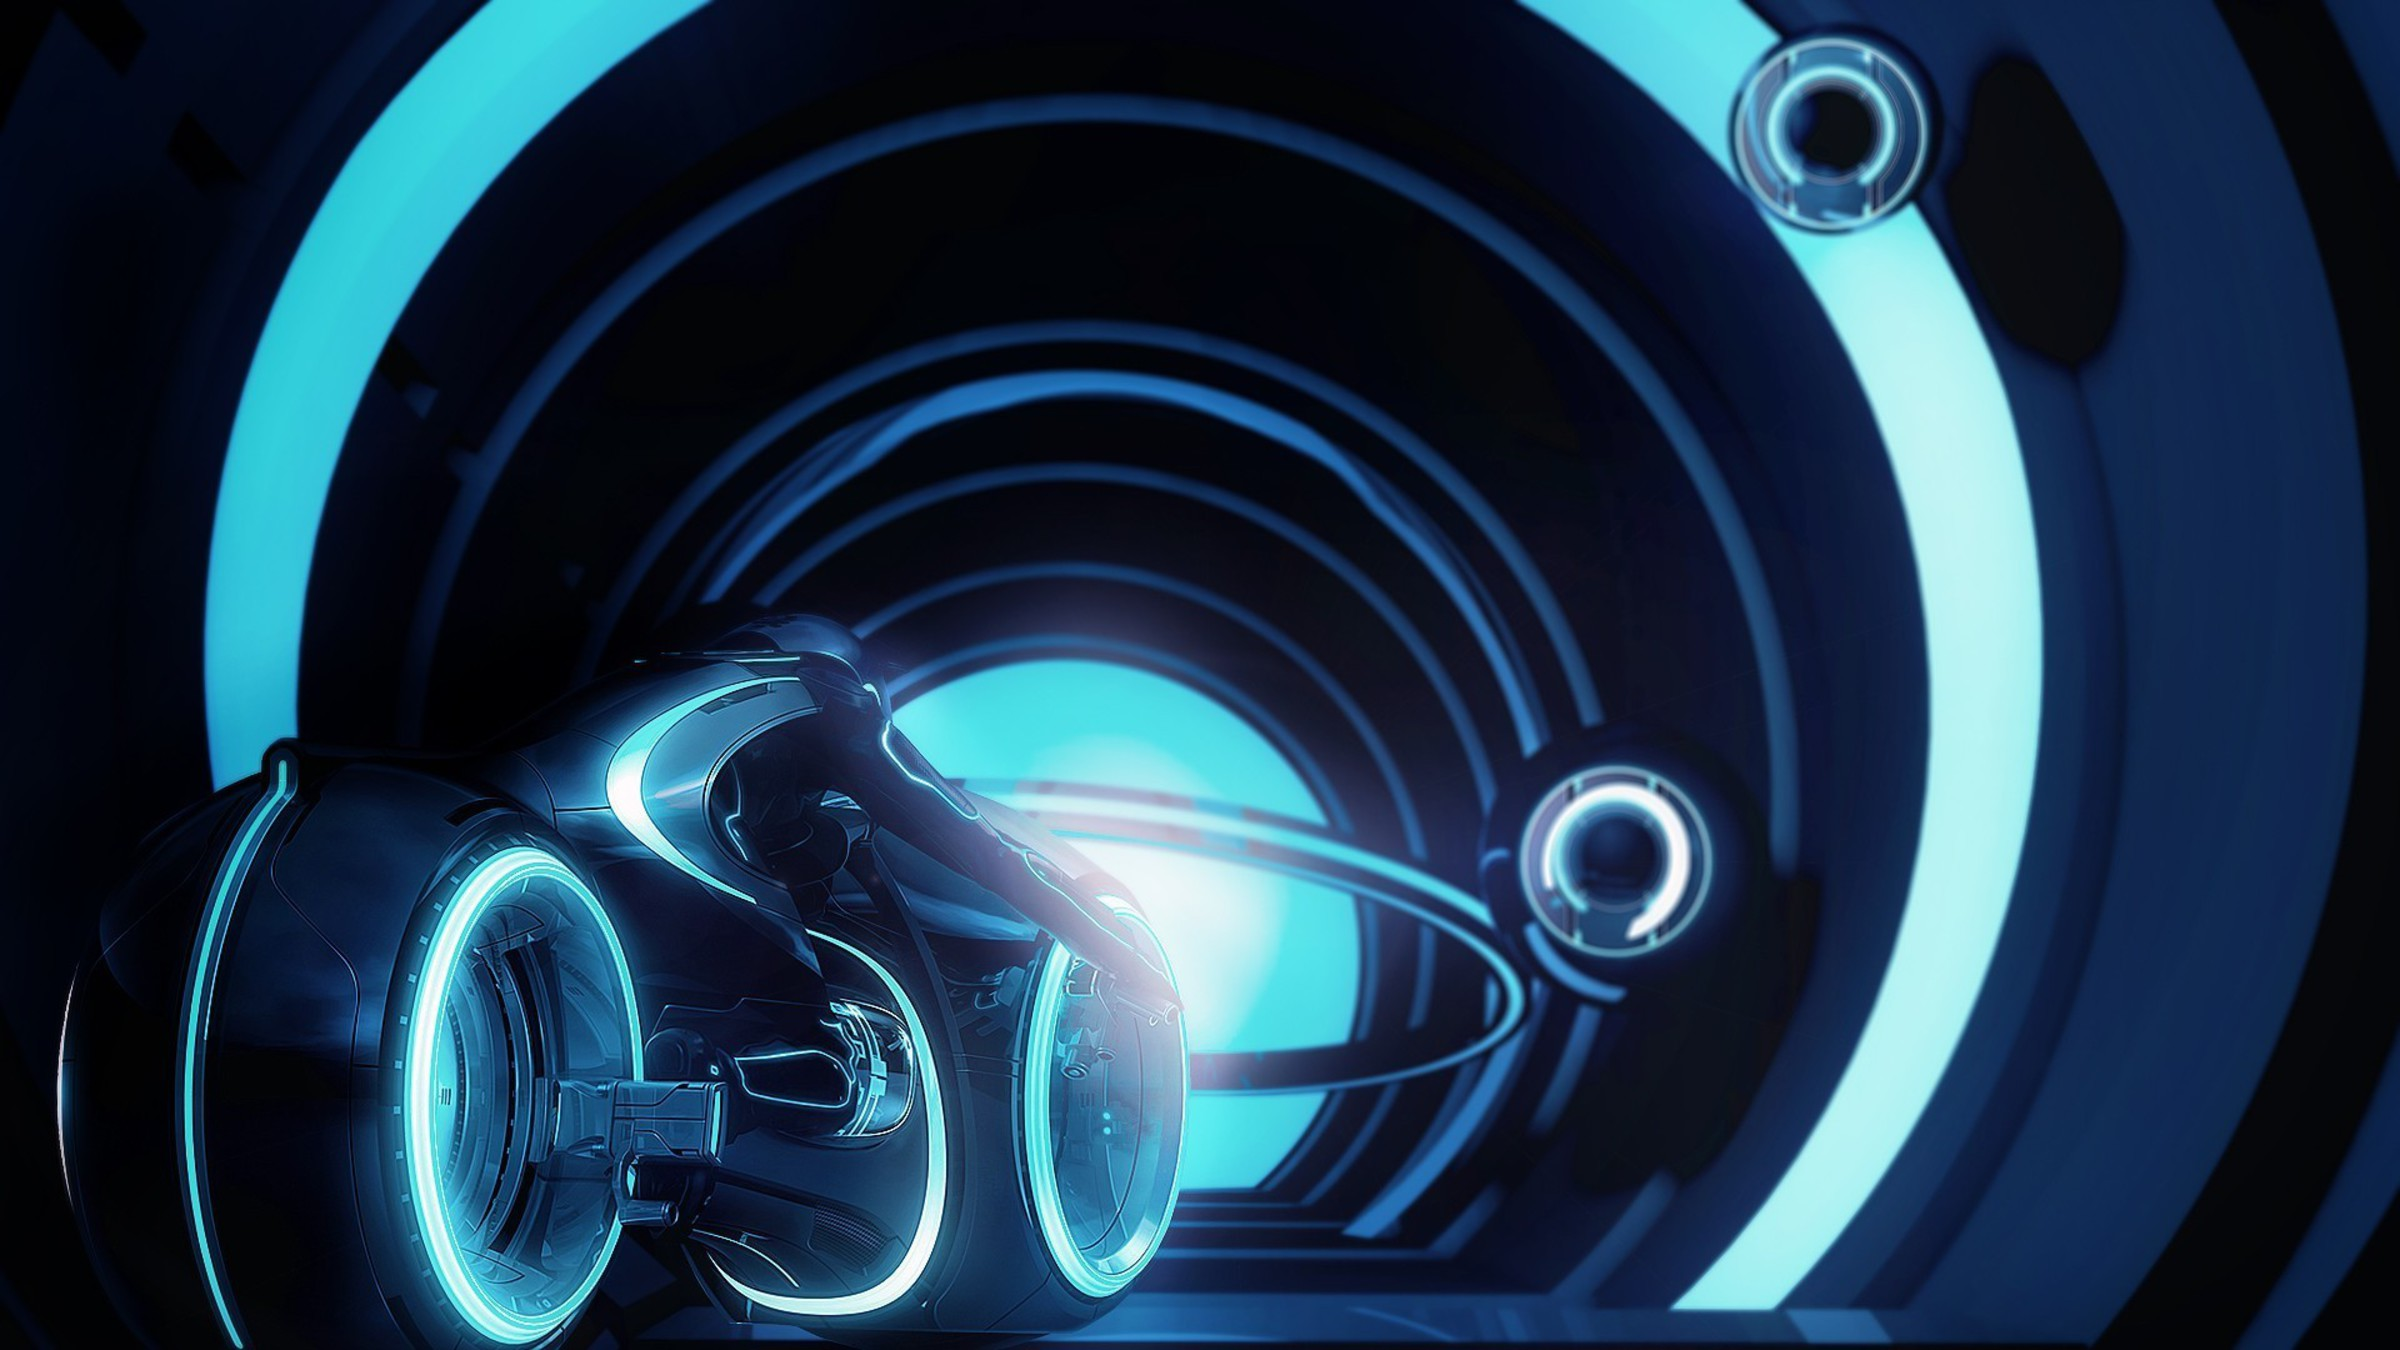 Tron Legacy Computers Movies Science Fiction Wallpaper